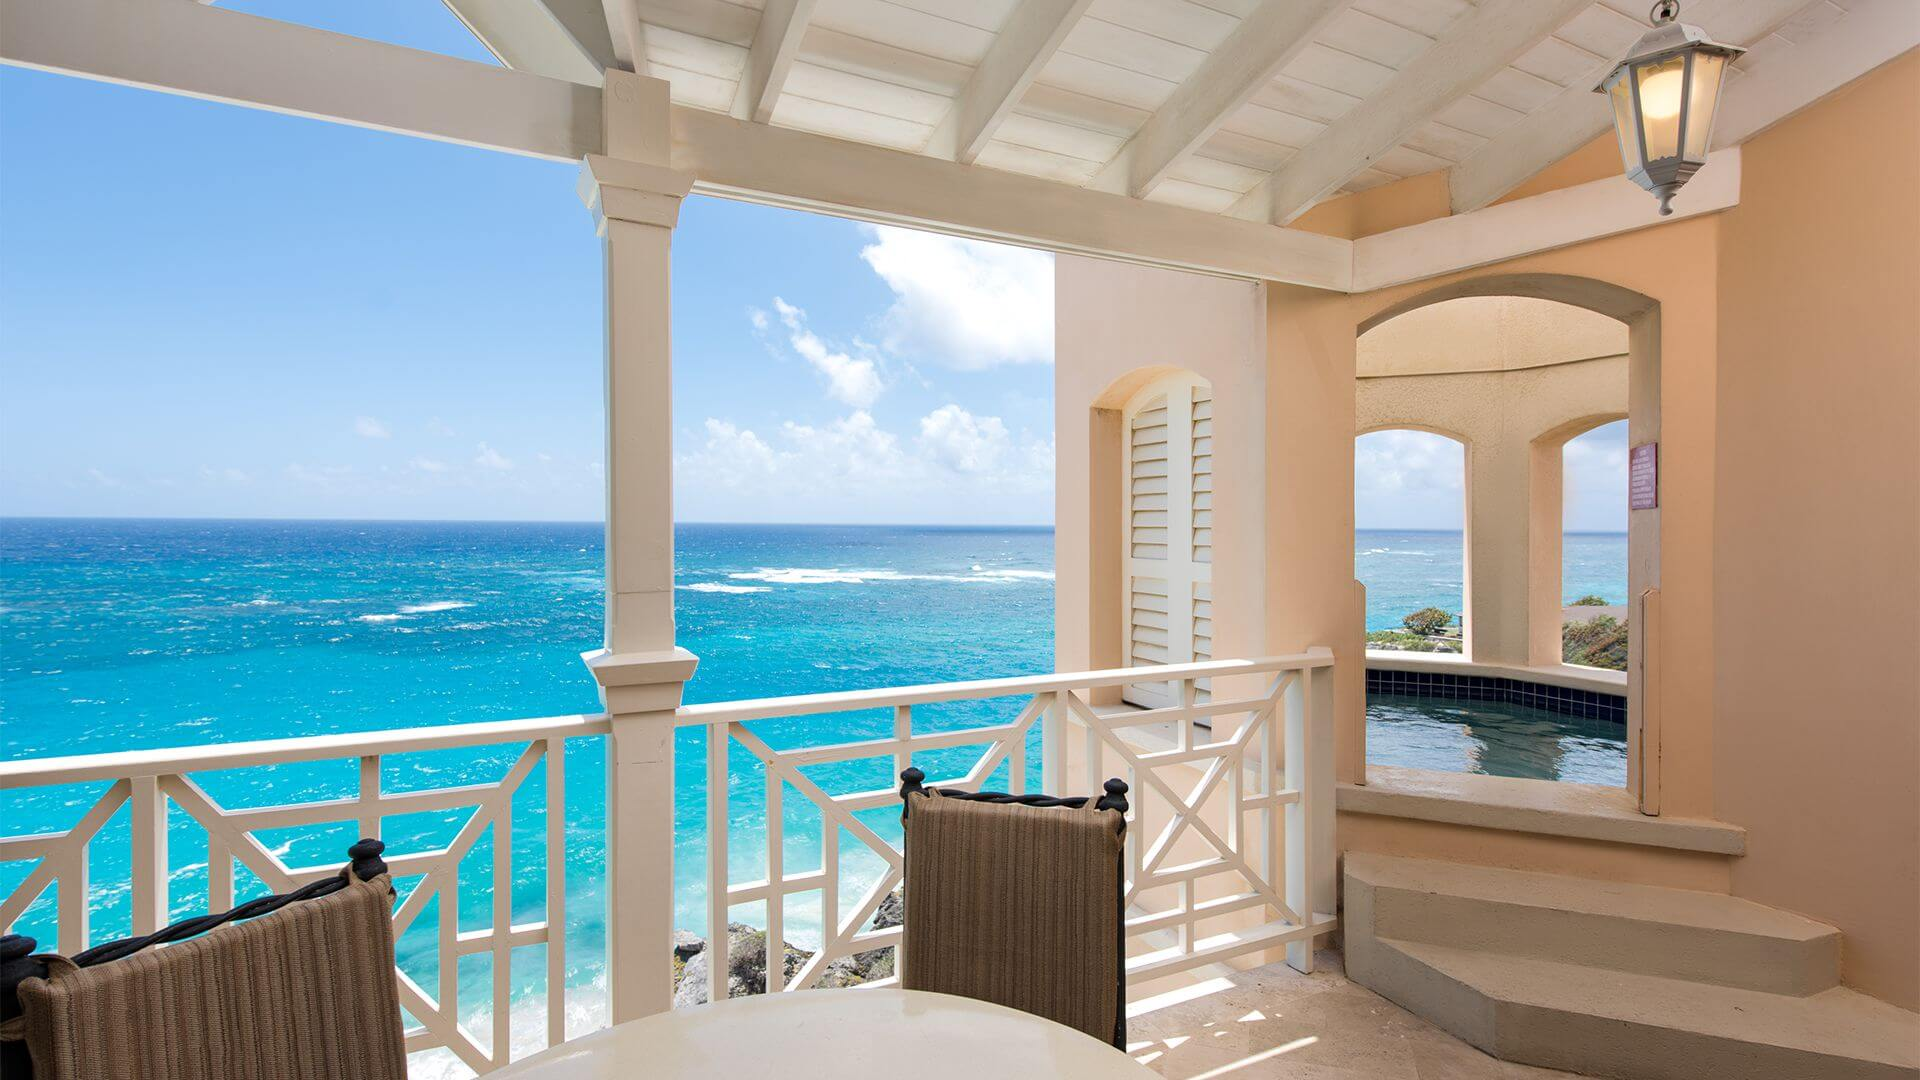 Ocean View Penthouse - Balcony